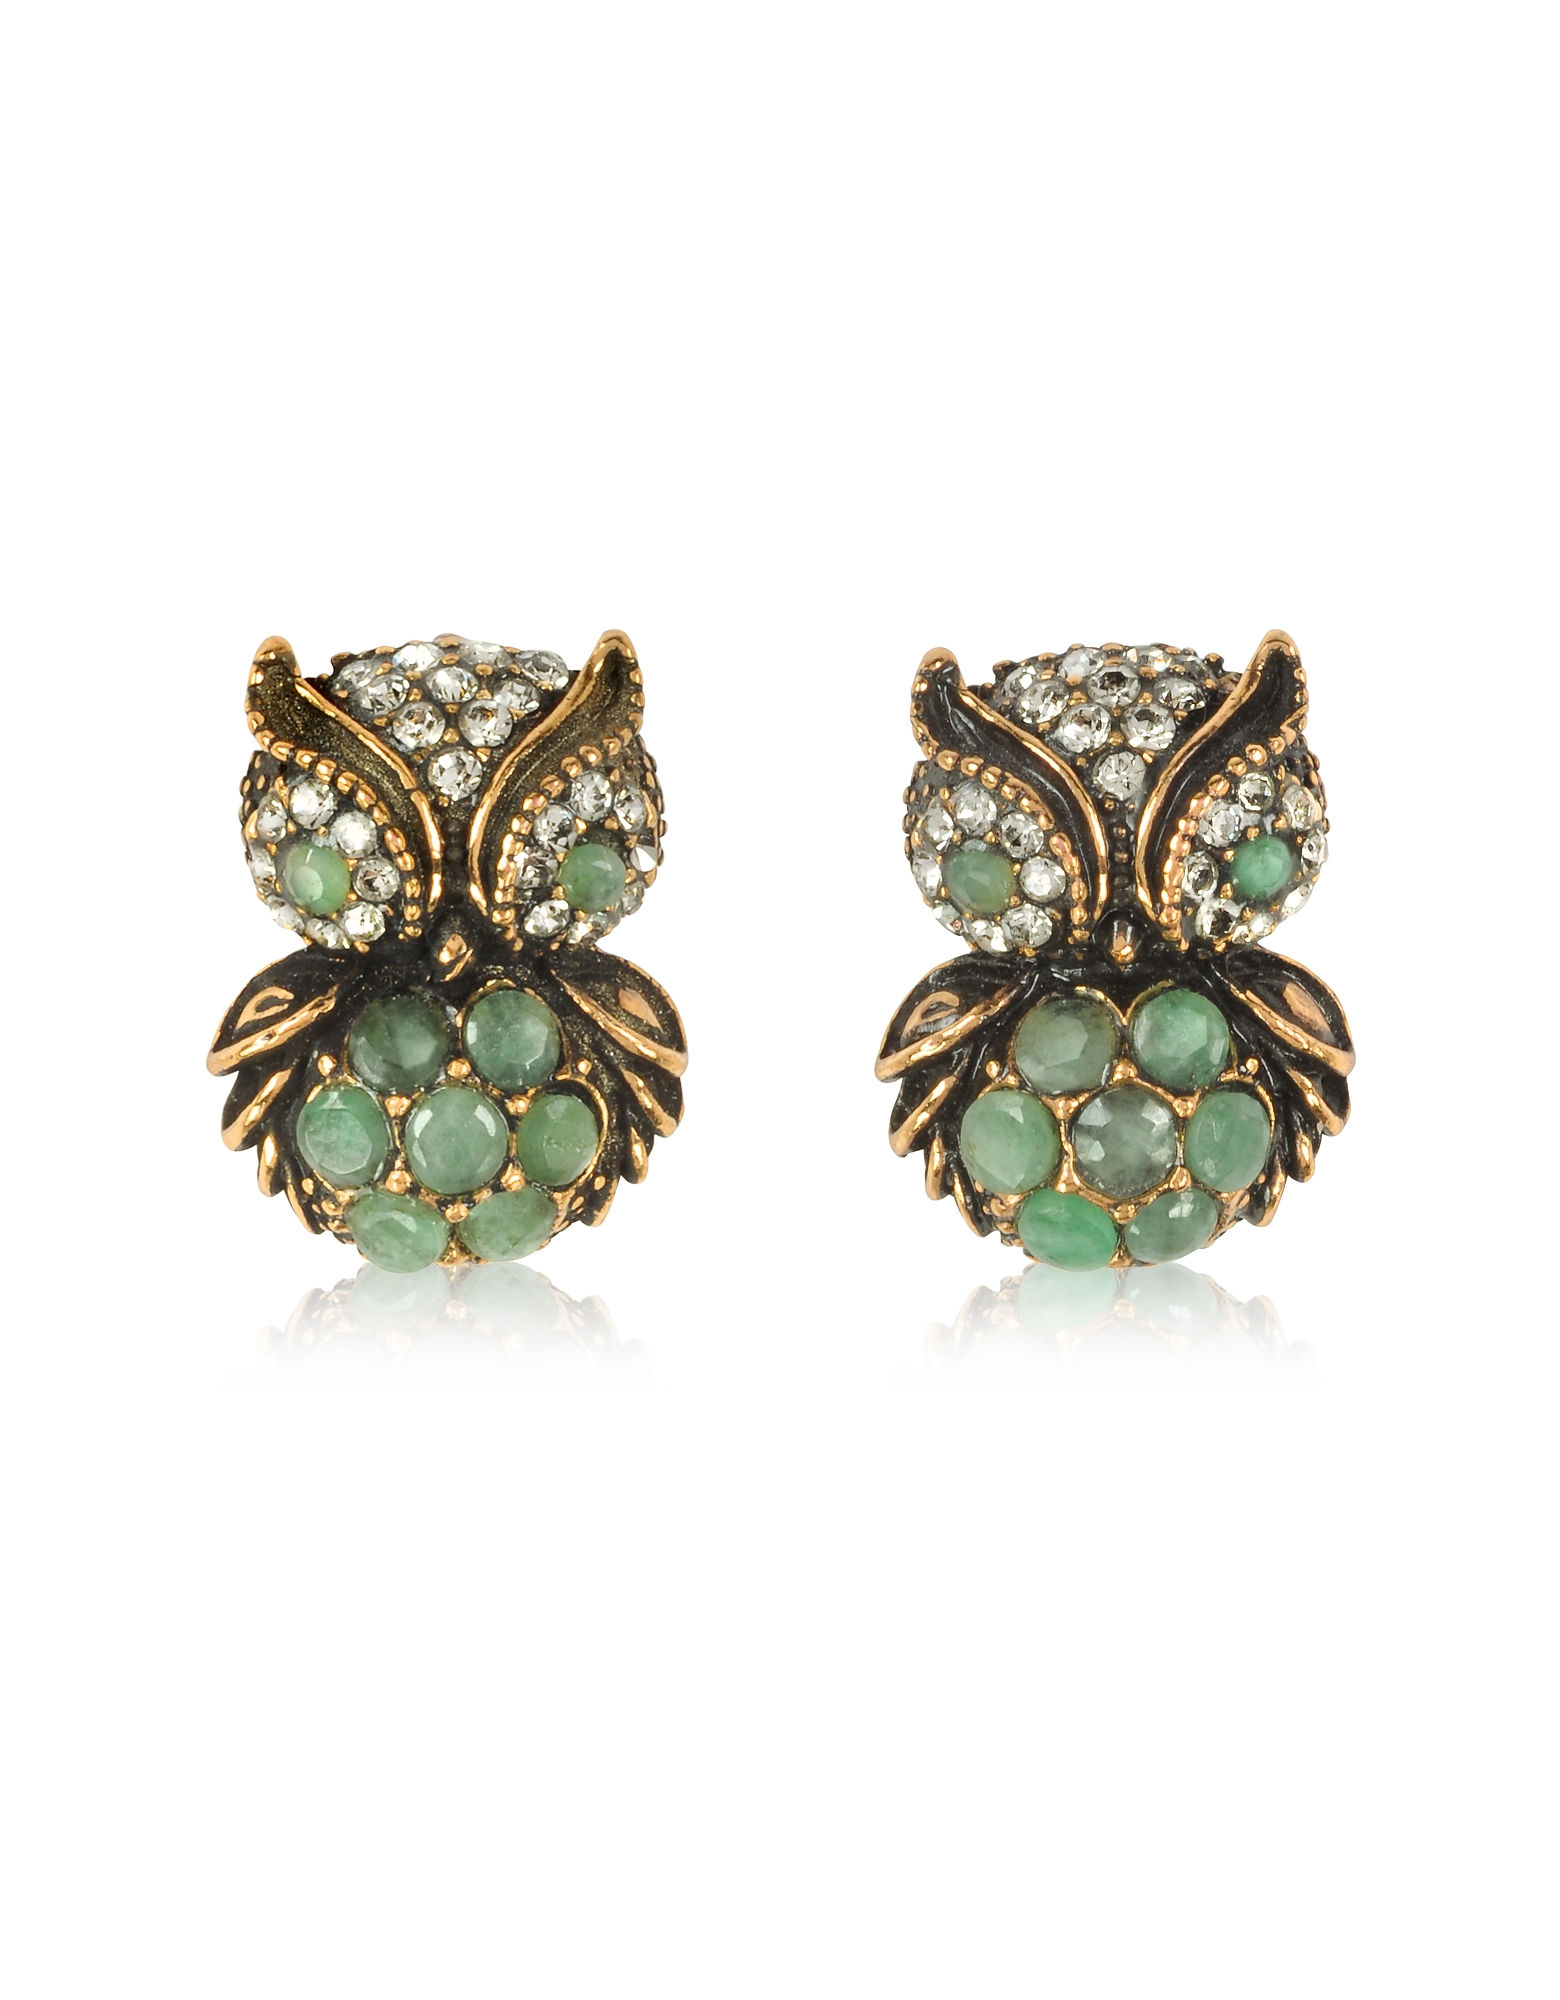 Alcozer & J Earrings, Green Owl Earrings w/Stones